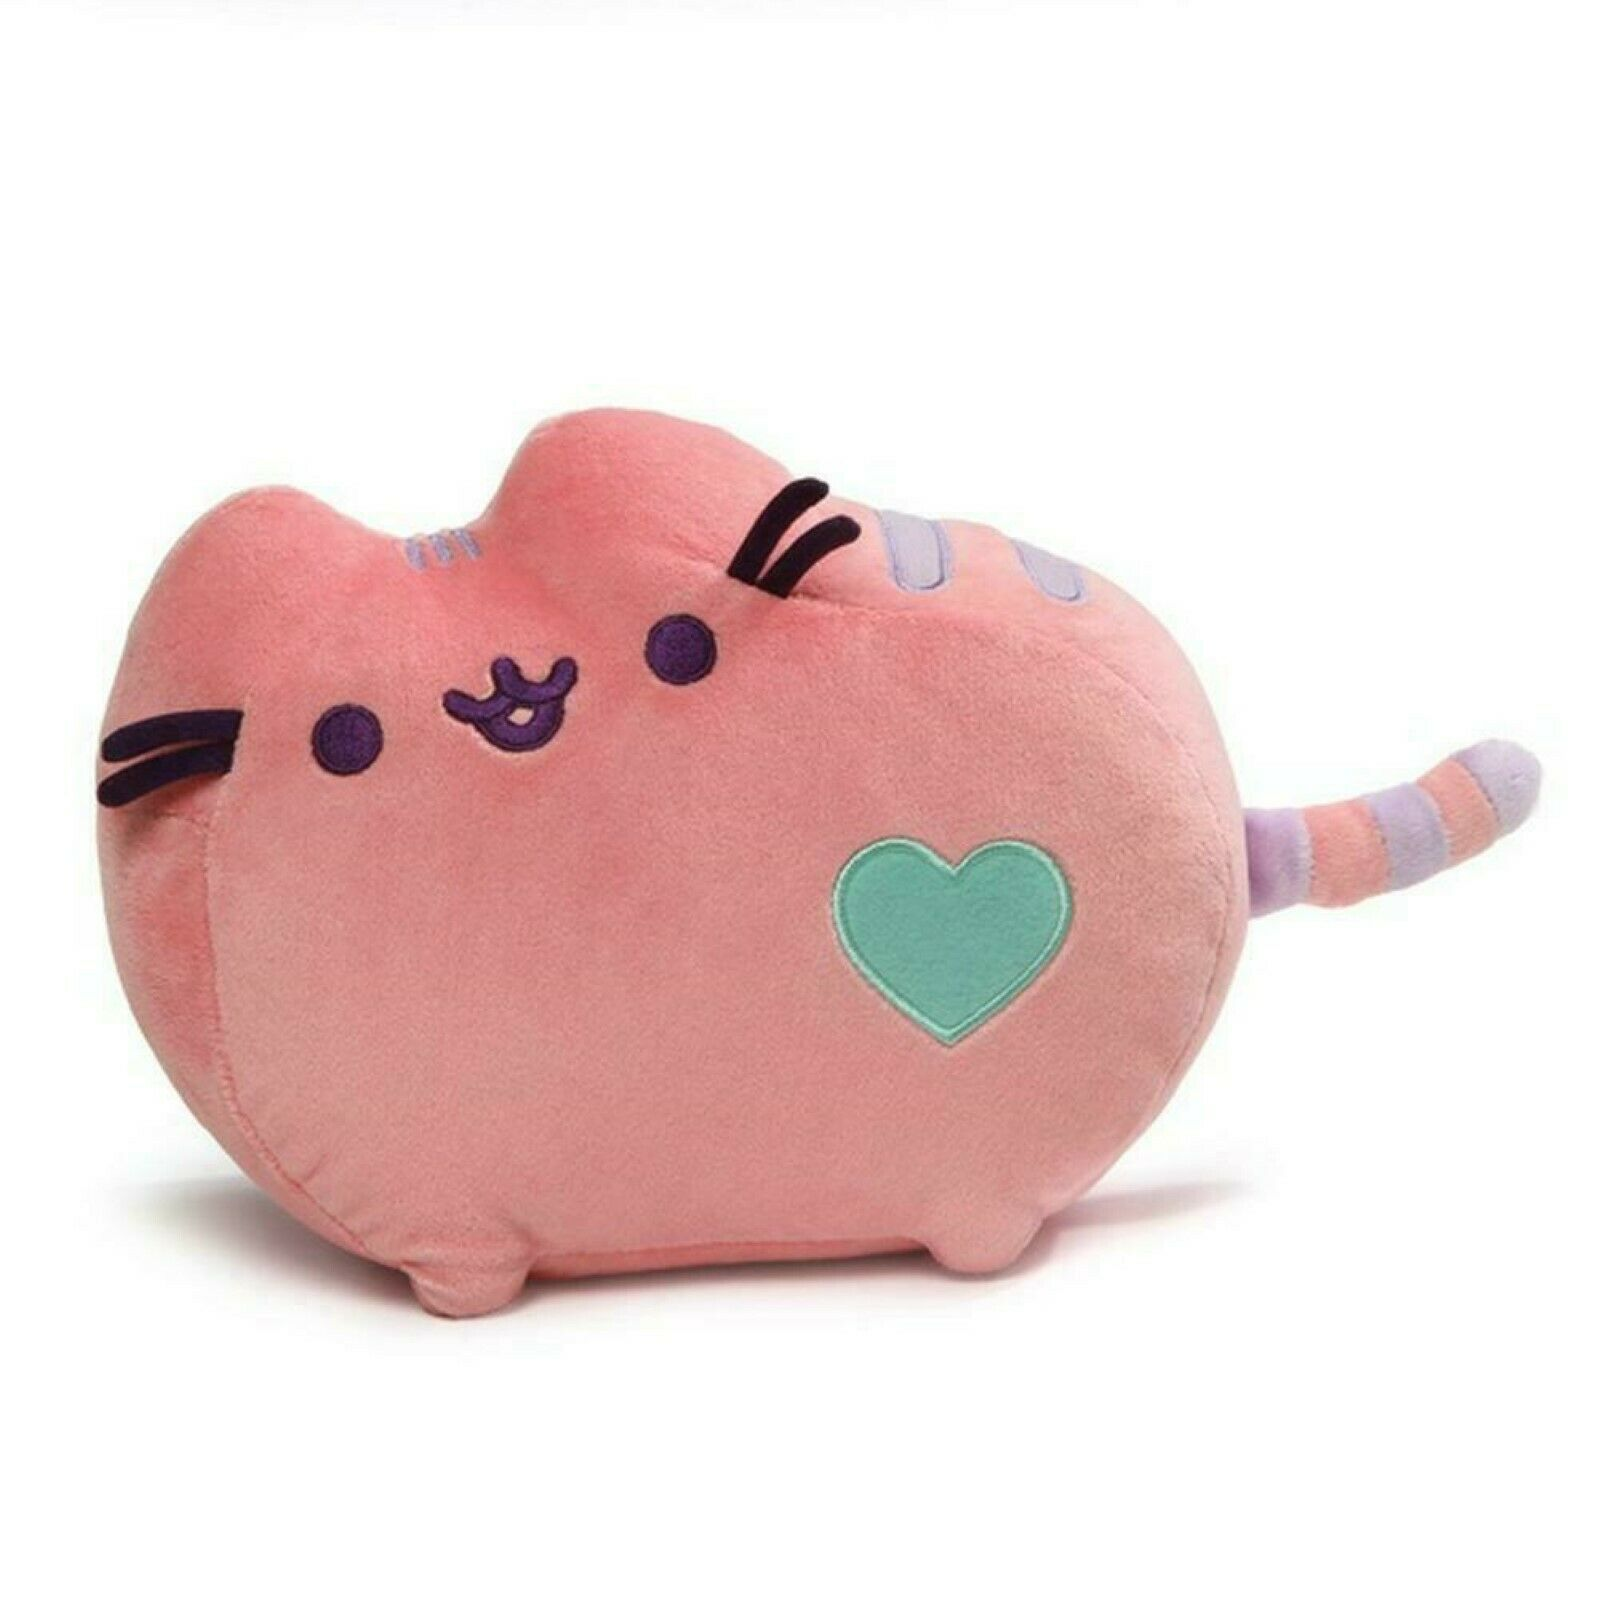 Pusheen The Cat Pastel Pink Plush Heart Genuine Gund